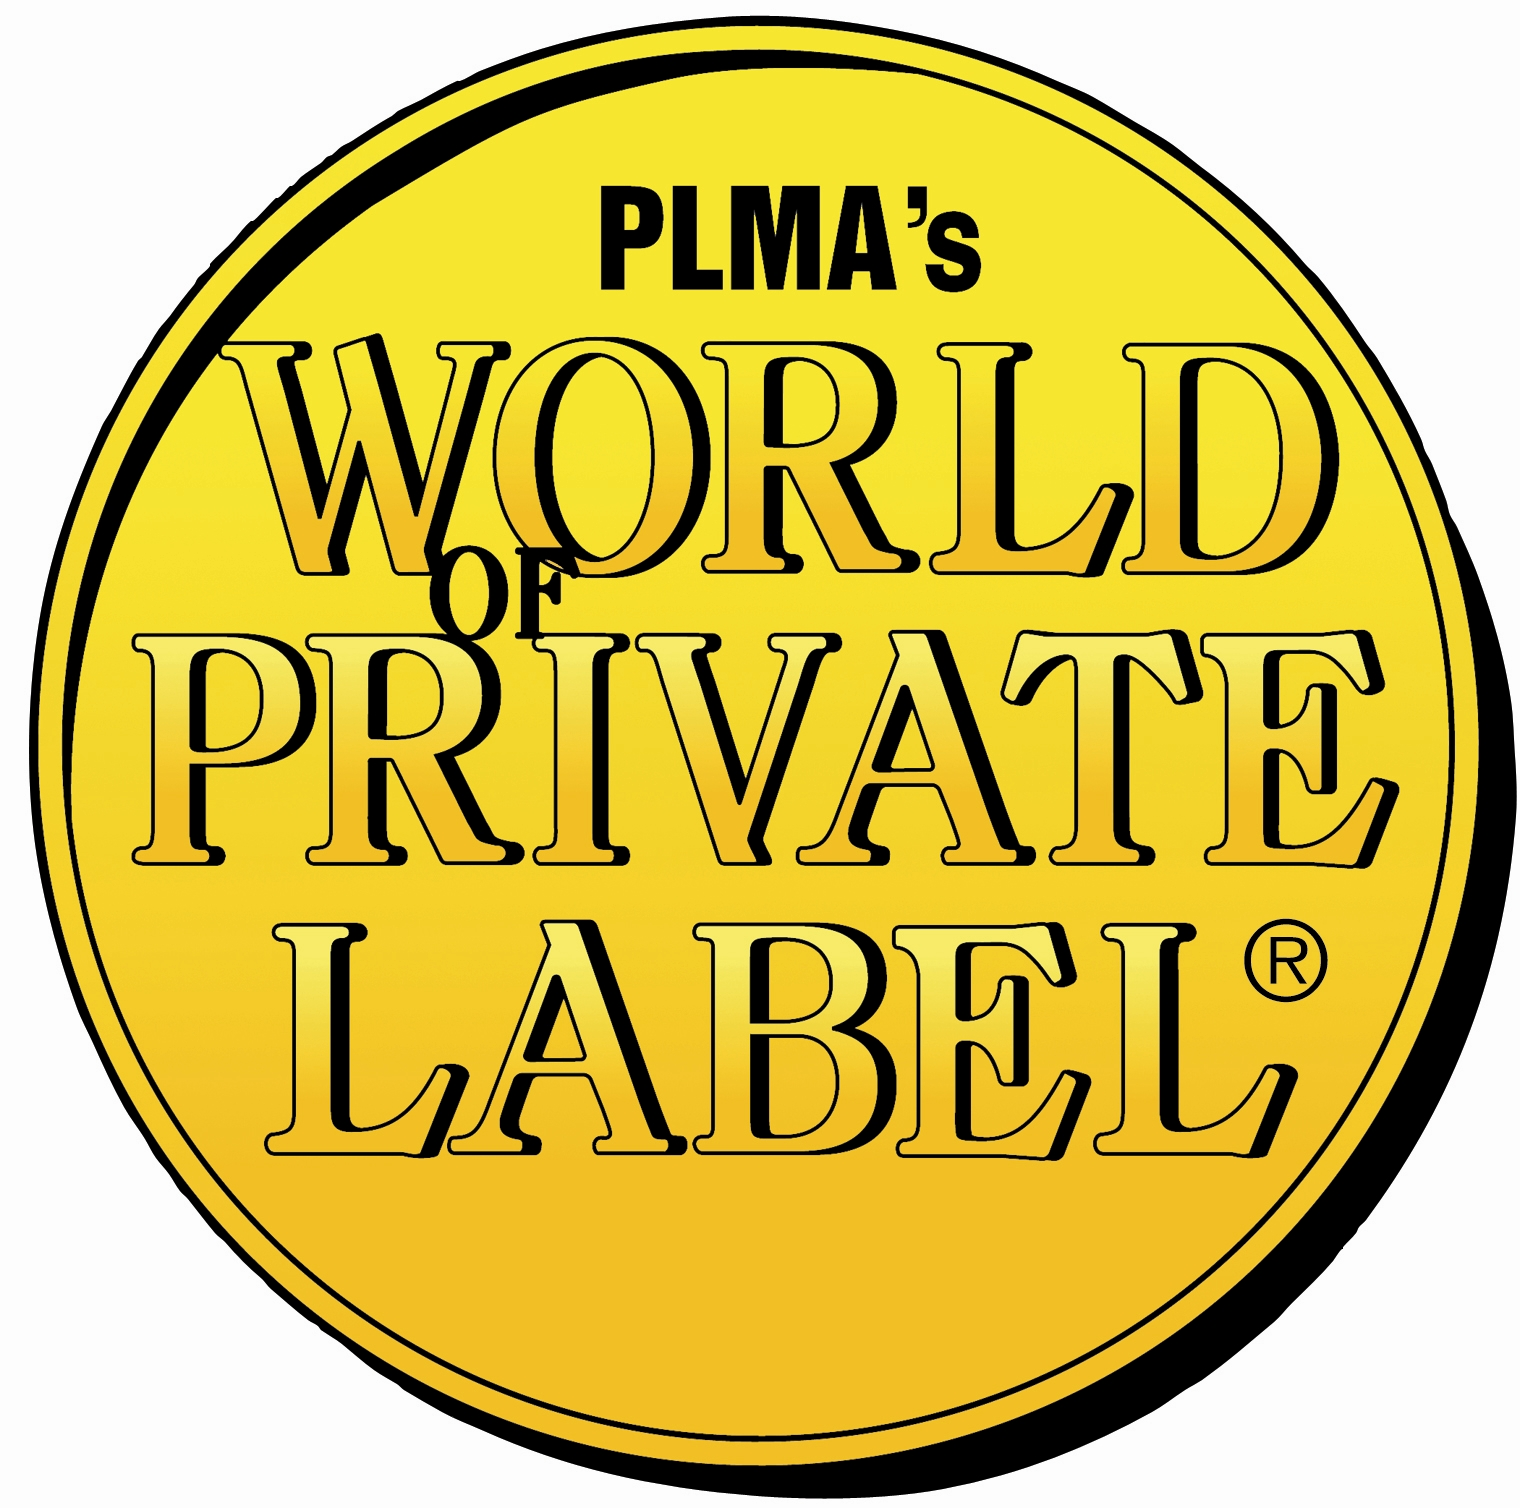 Logo World of Private Label (R)